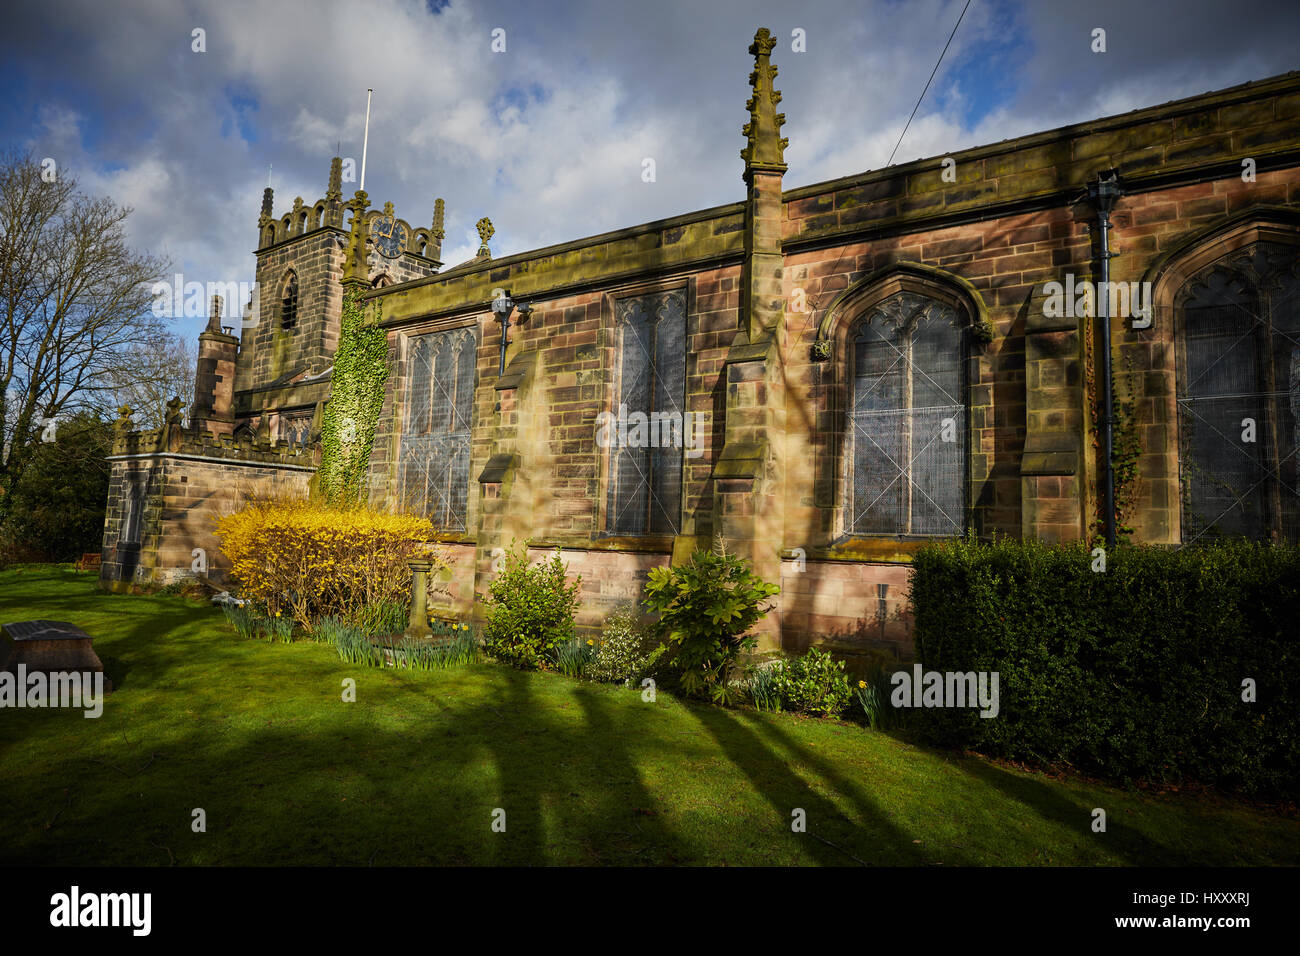 Sunny day at St James Church exterior  on Stenner Lane in Didsbury,  Manchester, England, UK, - Stock Image